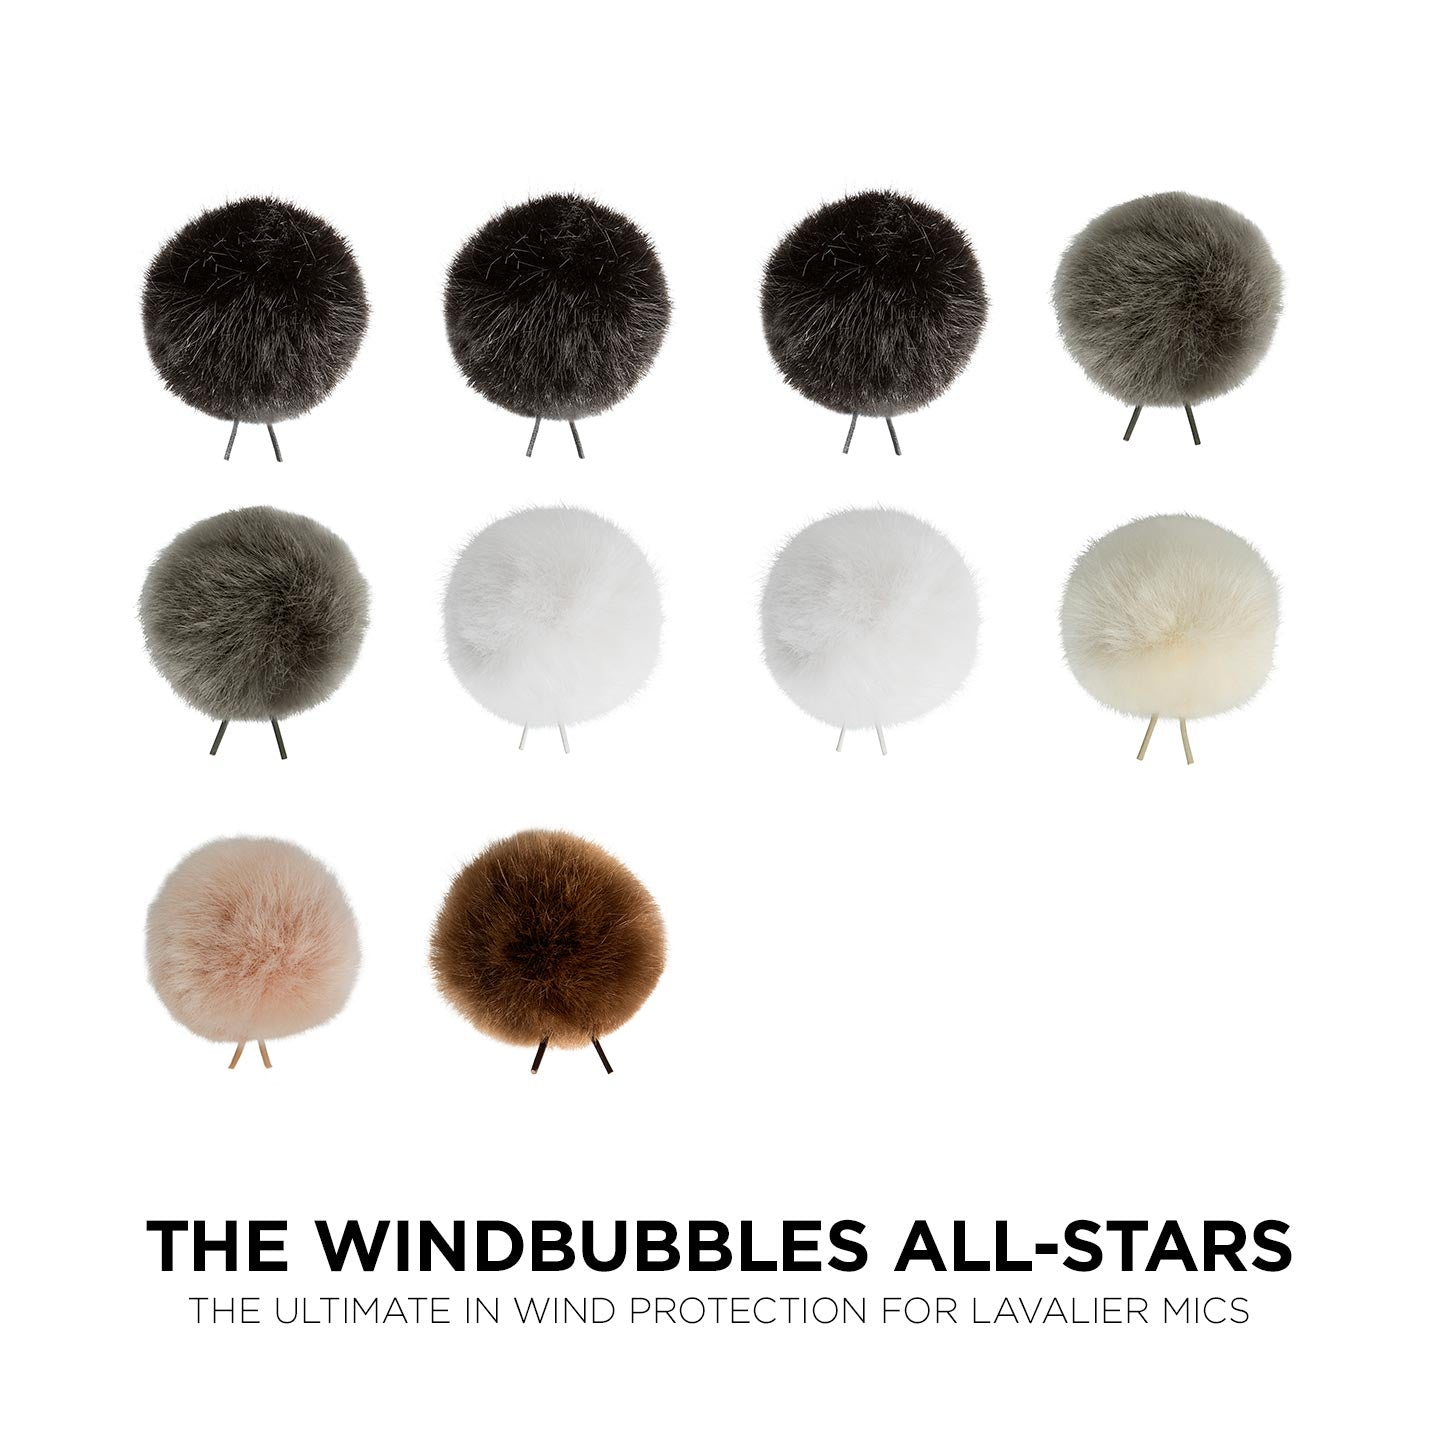 The Windbubble All-Stars